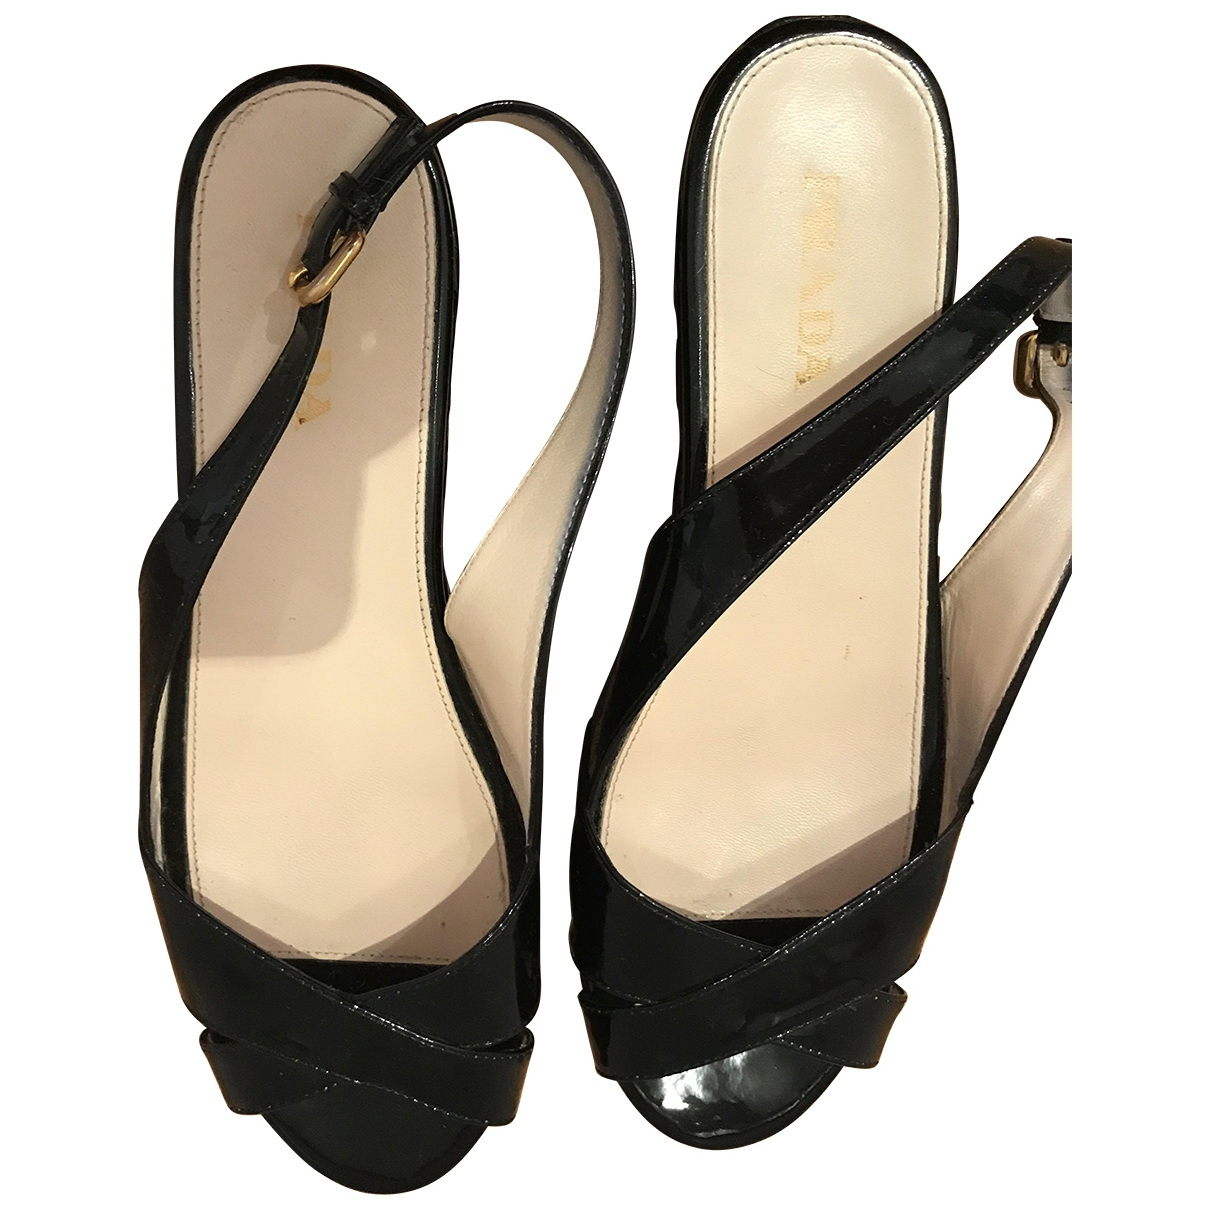 Prada \N Black Patent leather Sandals for Women 40 EU